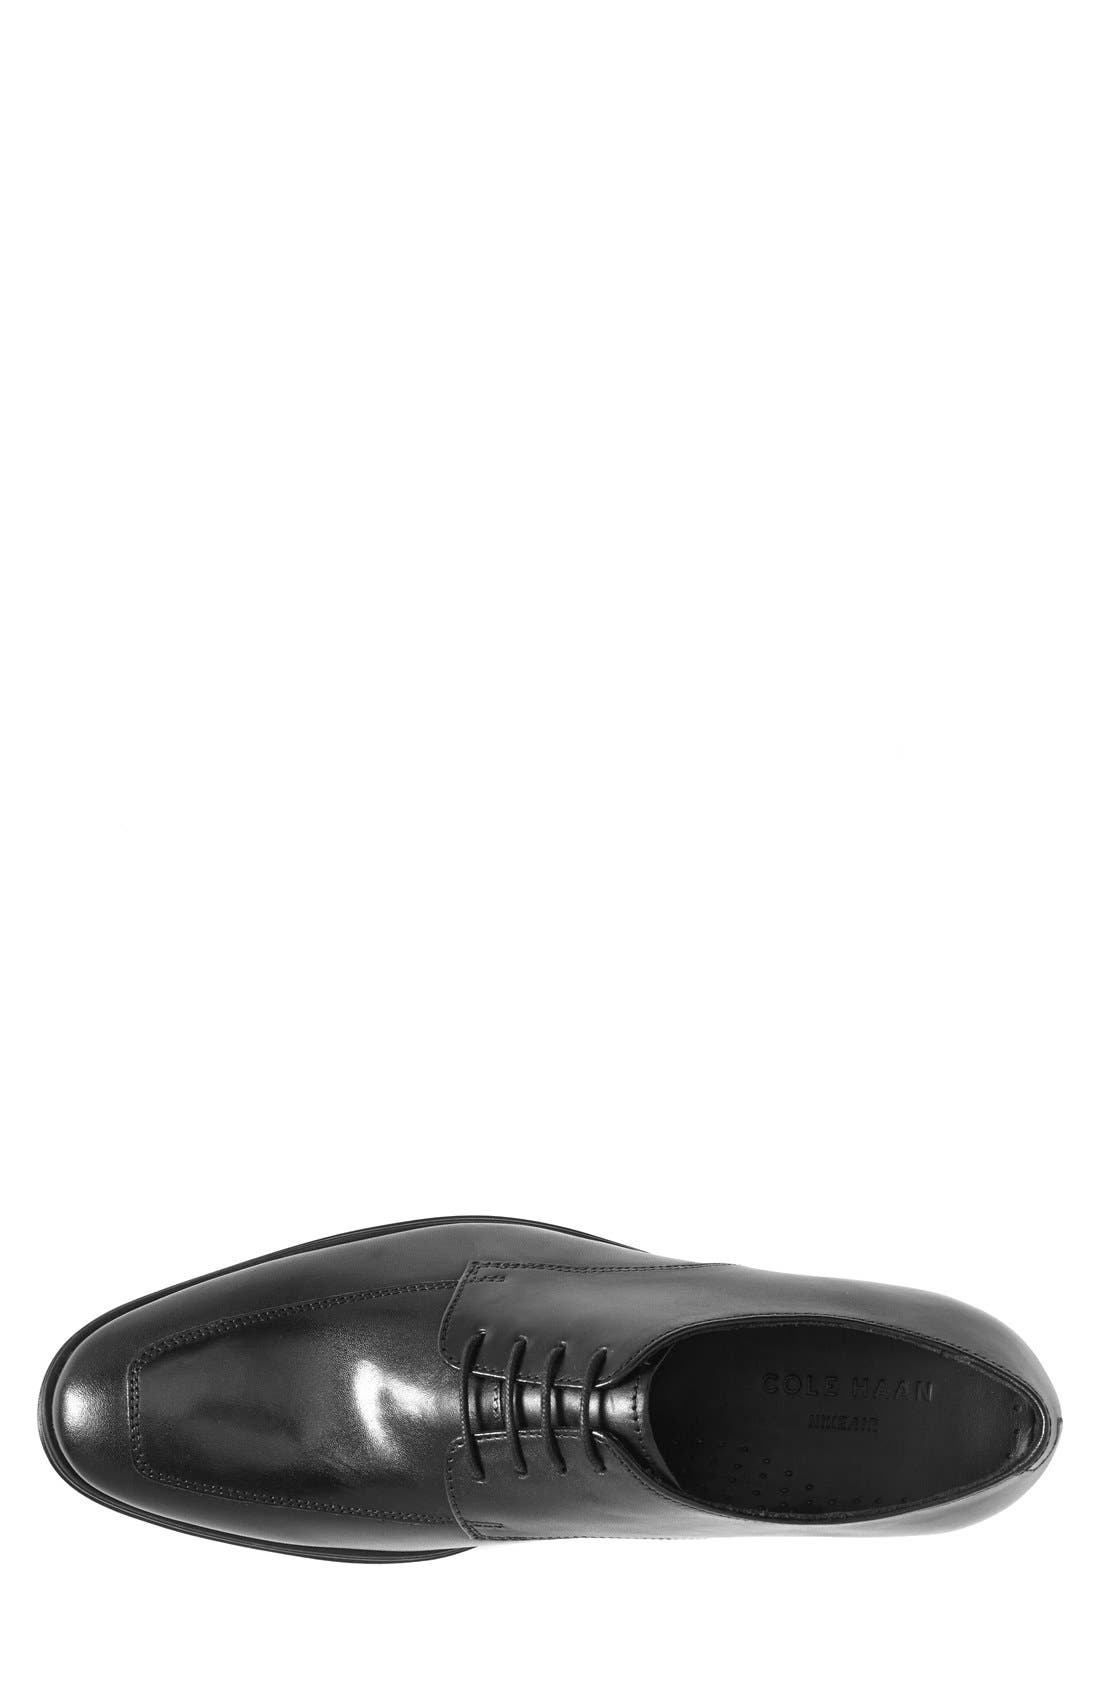 Alternate Image 3  - Cole Haan 'Air Adams' Oxford (Men) (Online Only)